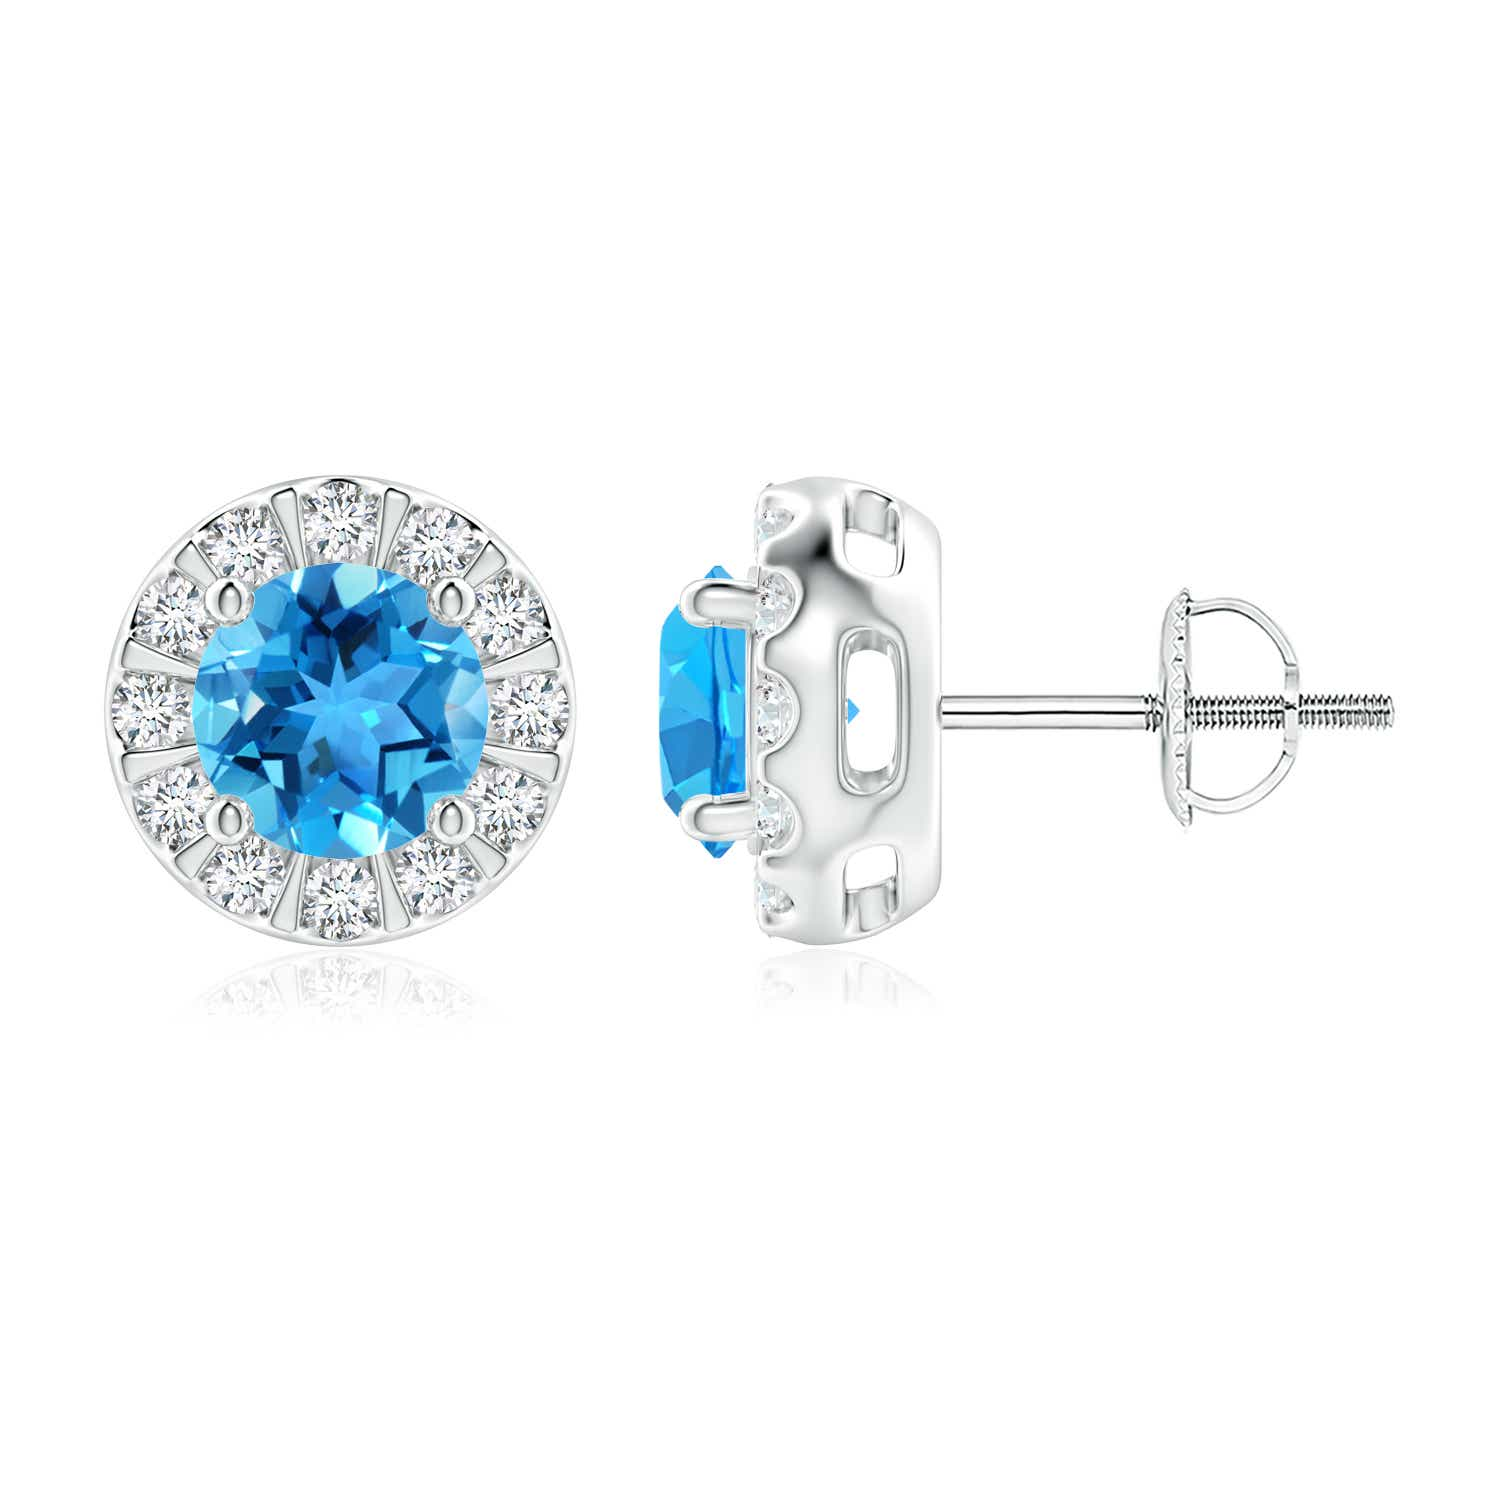 Rope Framed Claw-Set Swiss Blue Topaz Martini Stud Earrings 6mm Swiss Blue Topaz